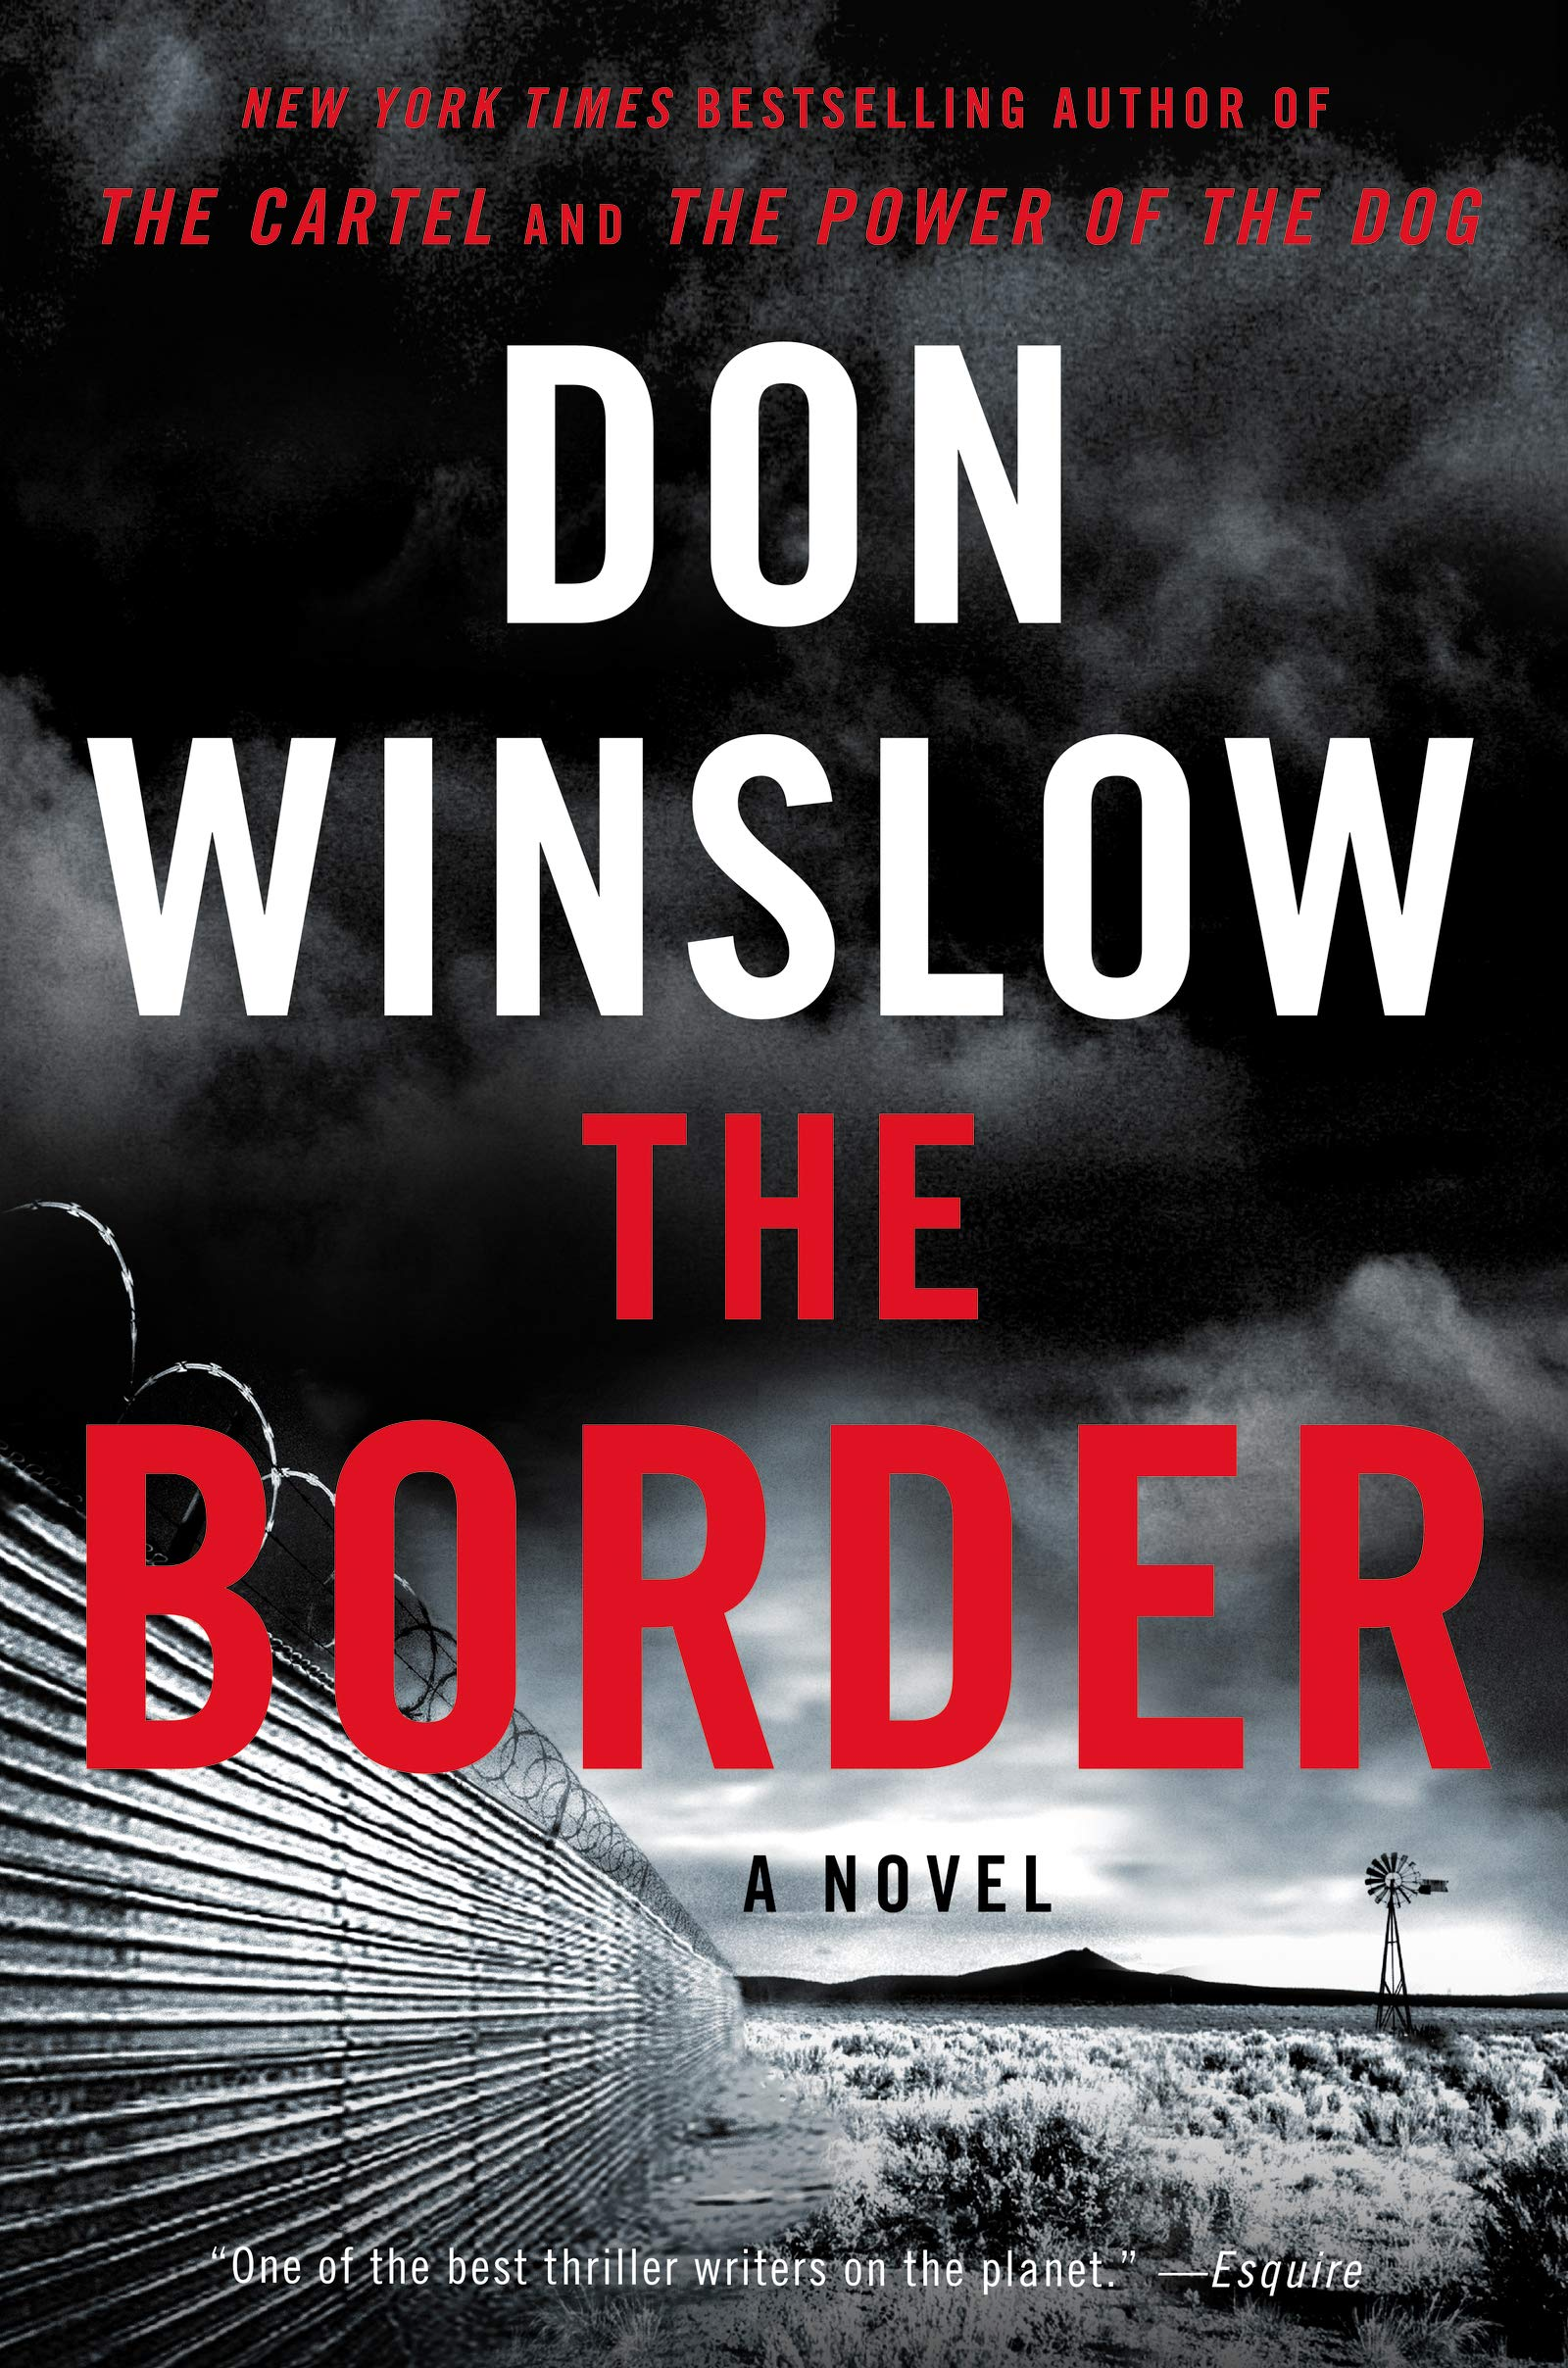 The Border_Don Winslow_Ray Porter.jpg